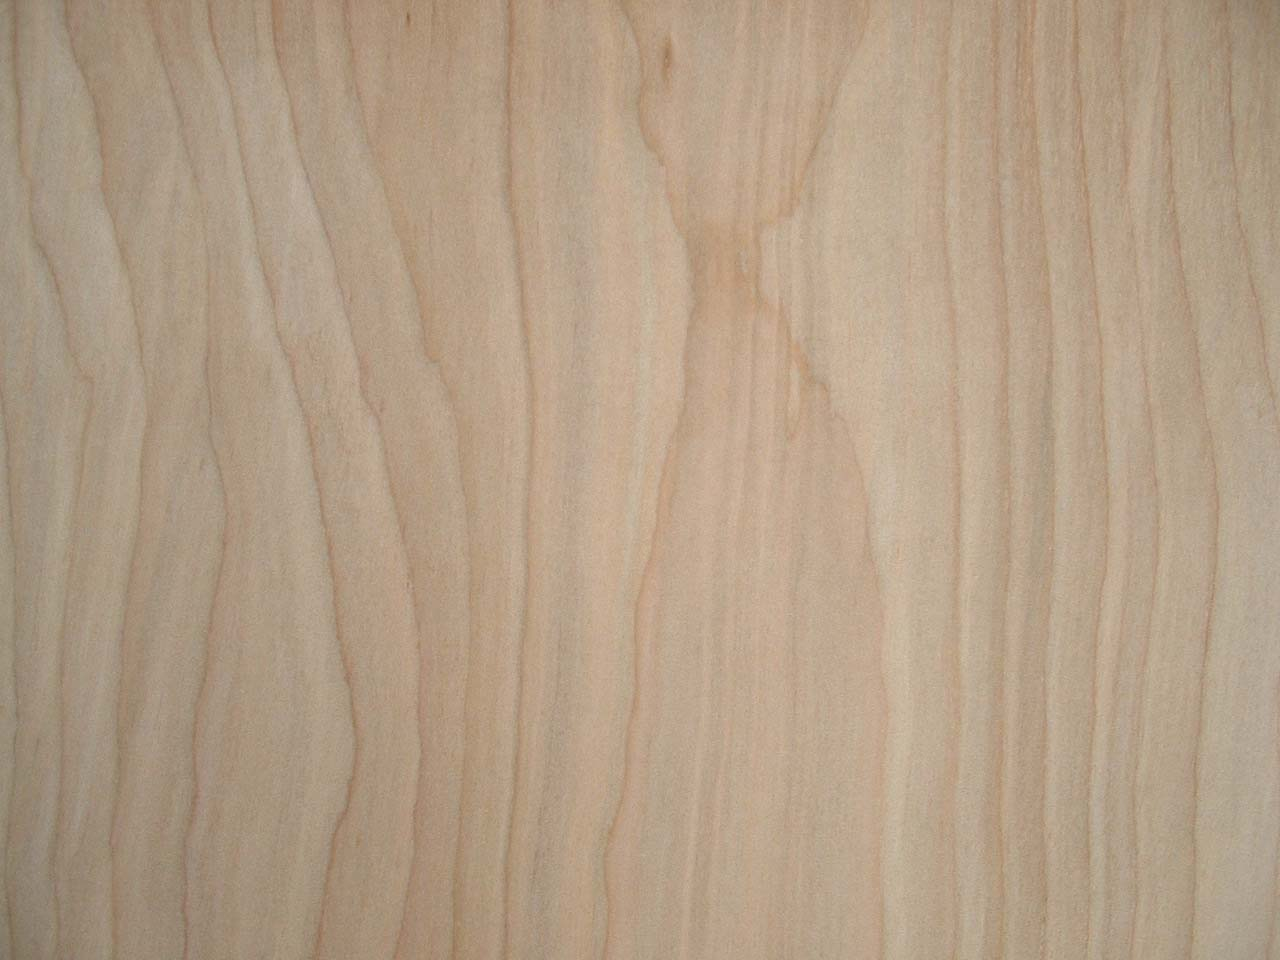 Pdf Diy Birch Plywood Sheets Download Dark Cherry Wood